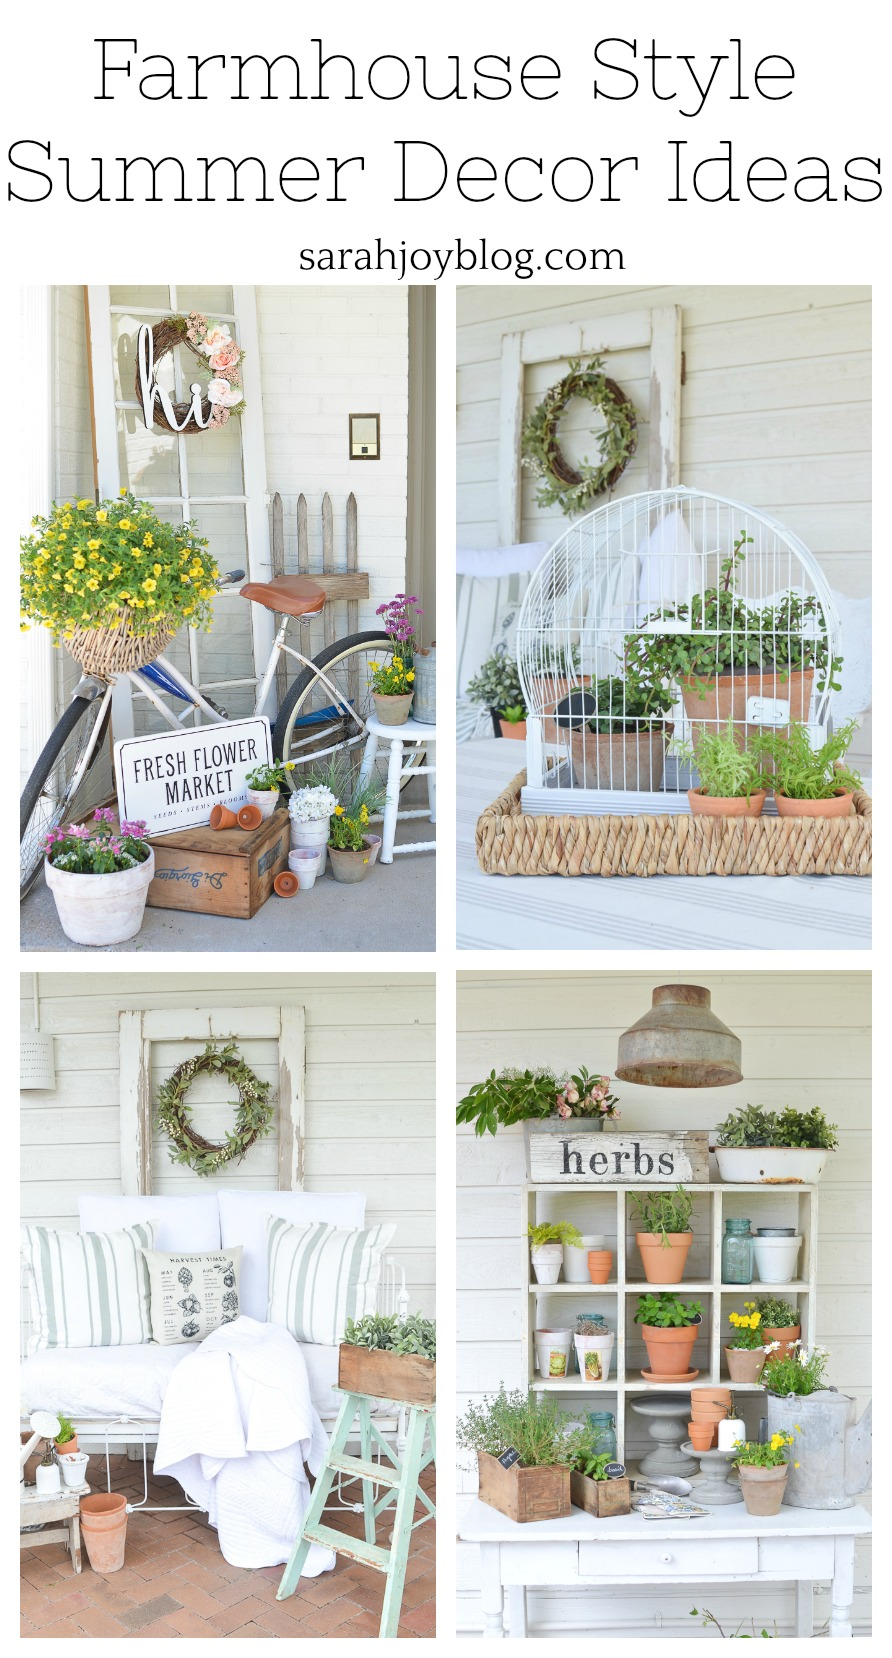 Farmhouse Style Summer Decor Ideas. Simple summer decor ideas for outdoor decor, front porch decor and more.